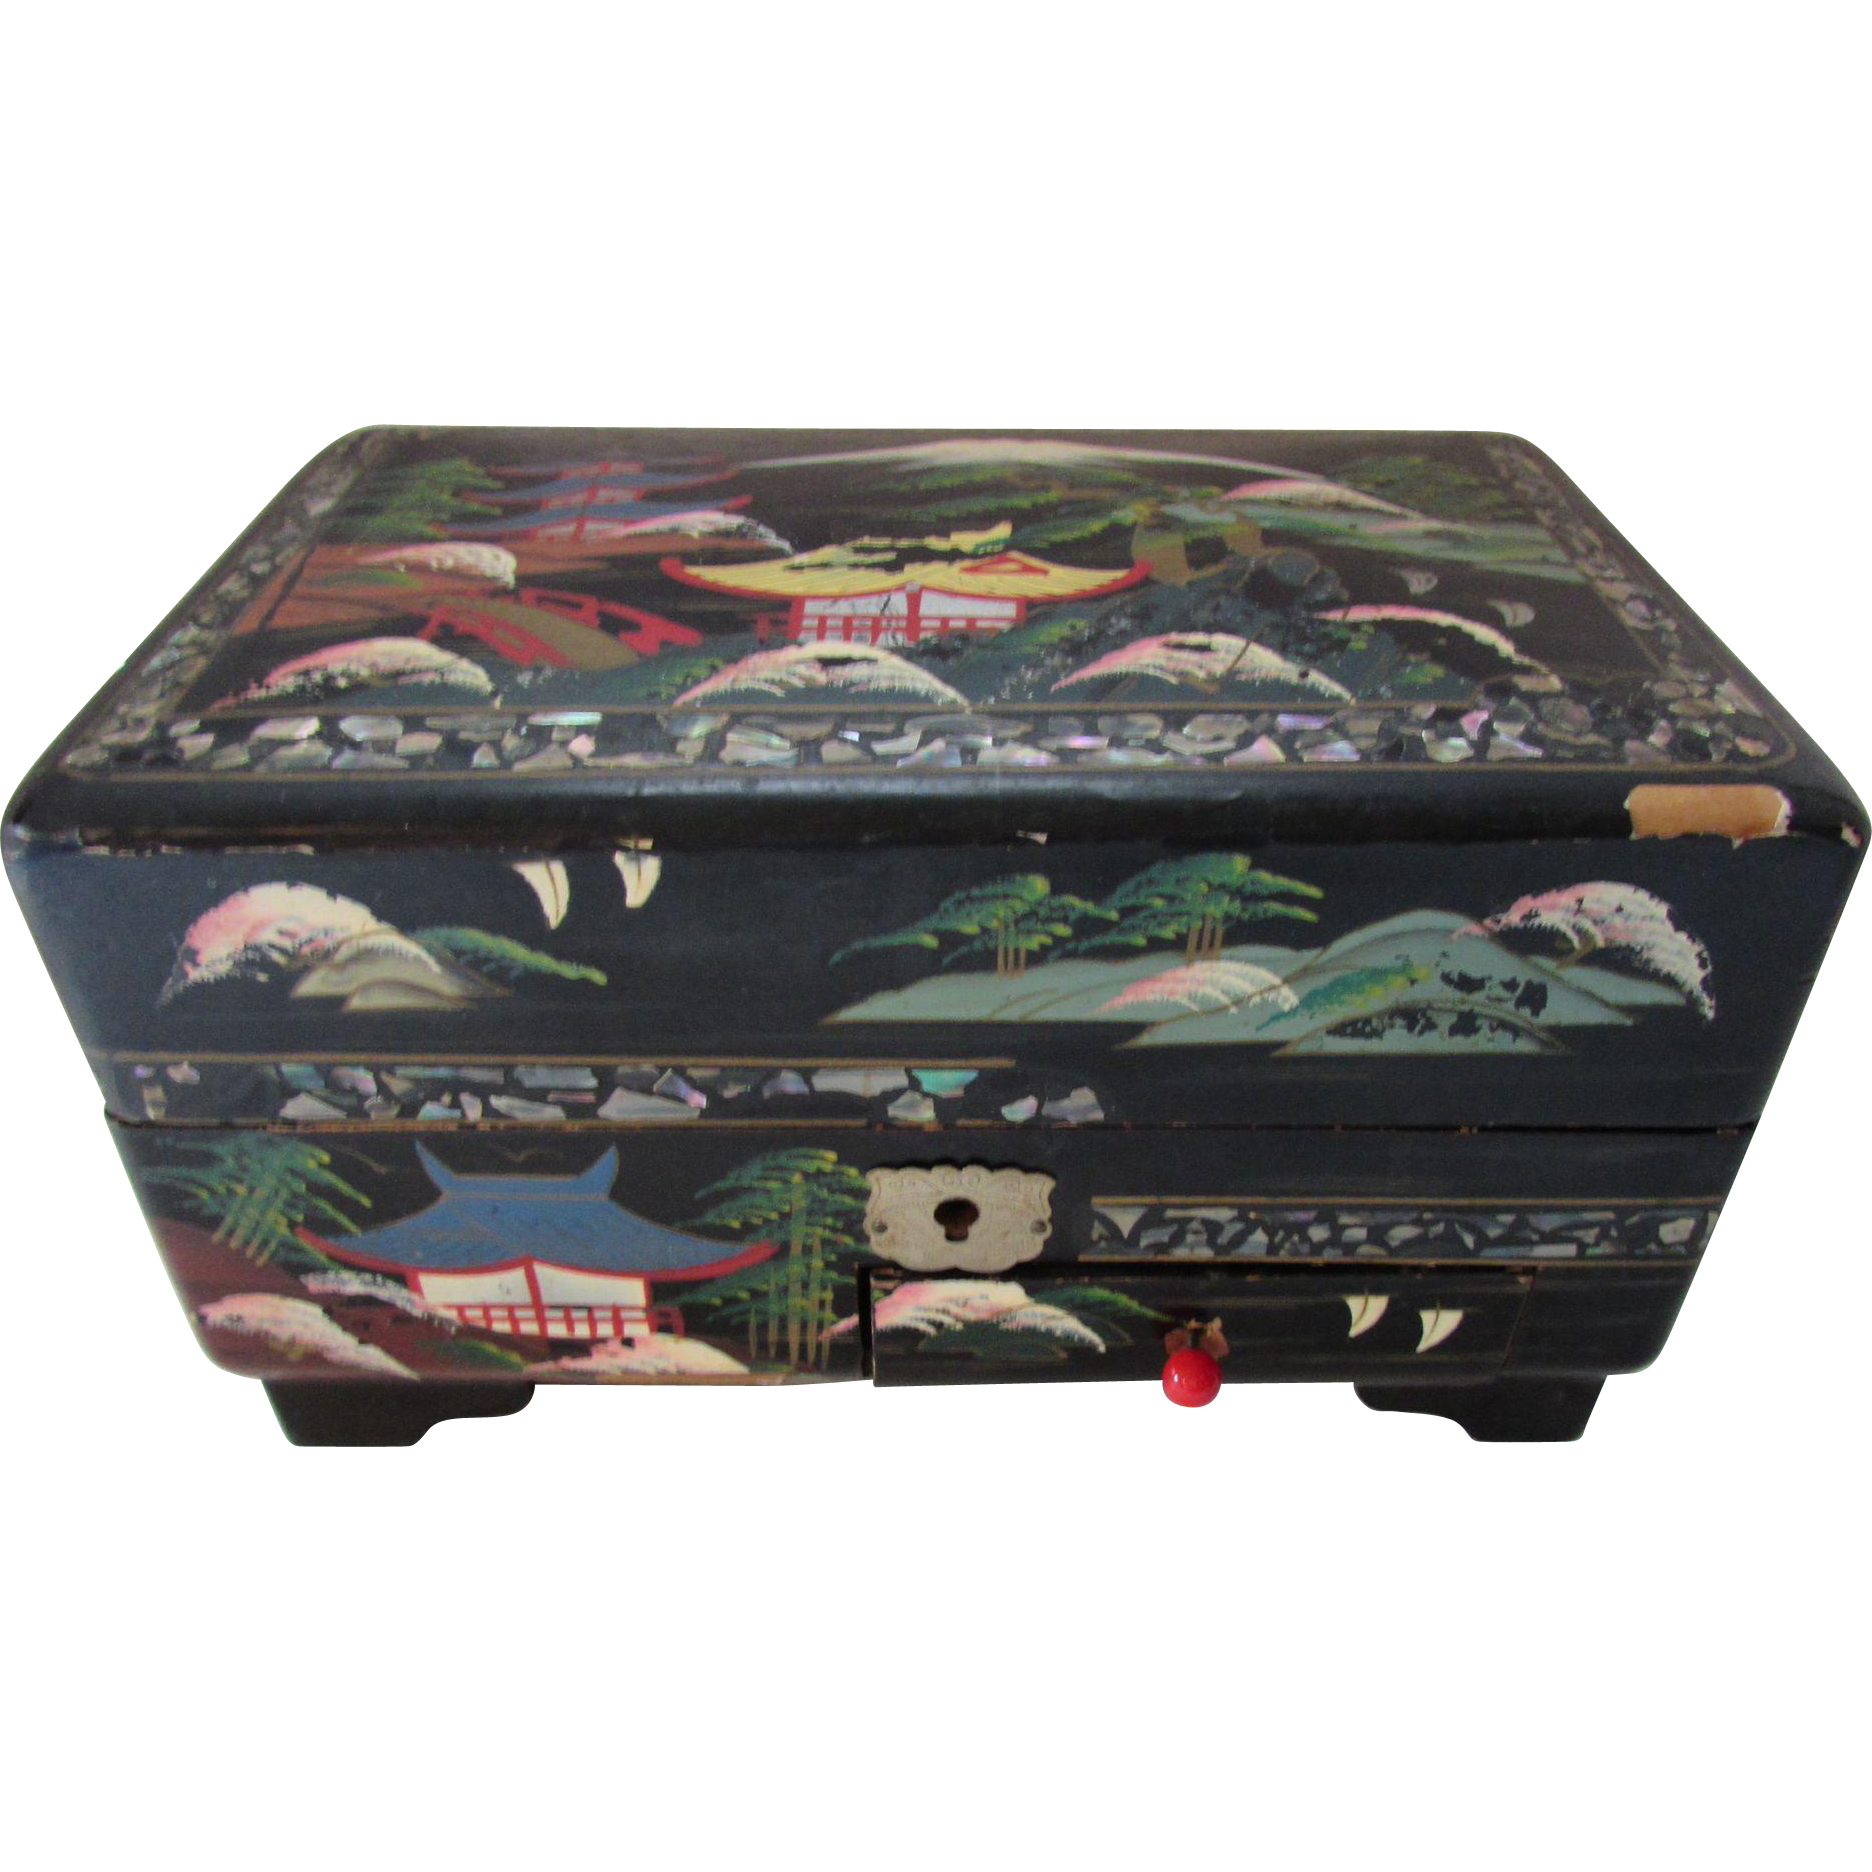 Vintage Asian Style Musical Jewelry Box in Black with Twirling Geisha and Fuchsia Interior